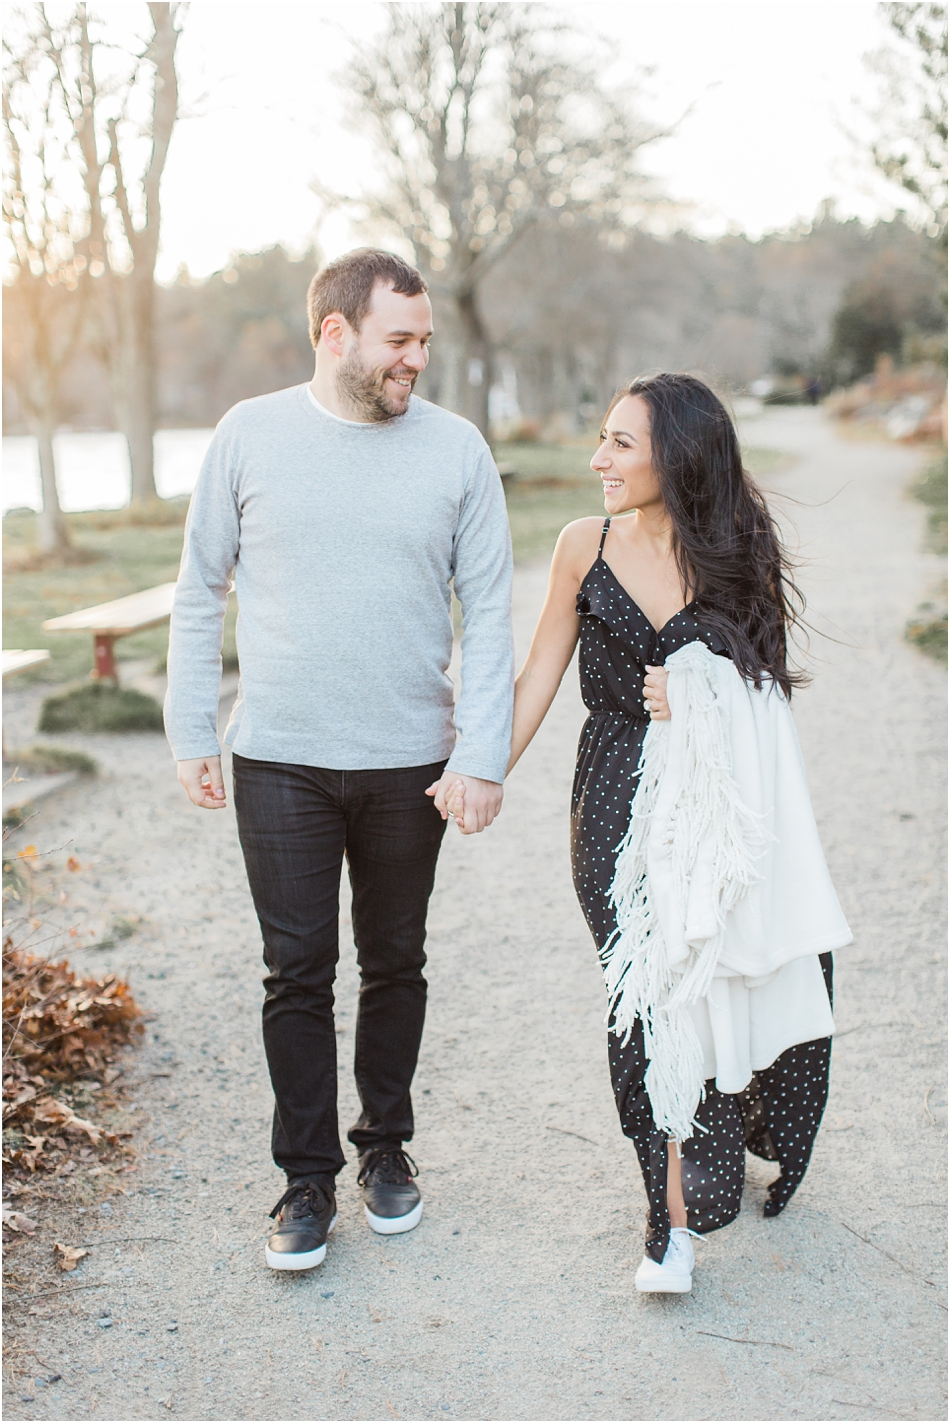 borderland_state_park_engagement_fall_michelle_matt_cape_cod_boston_new_england_wedding_photographer_Meredith_Jane_Photography_photo_0271.jpg